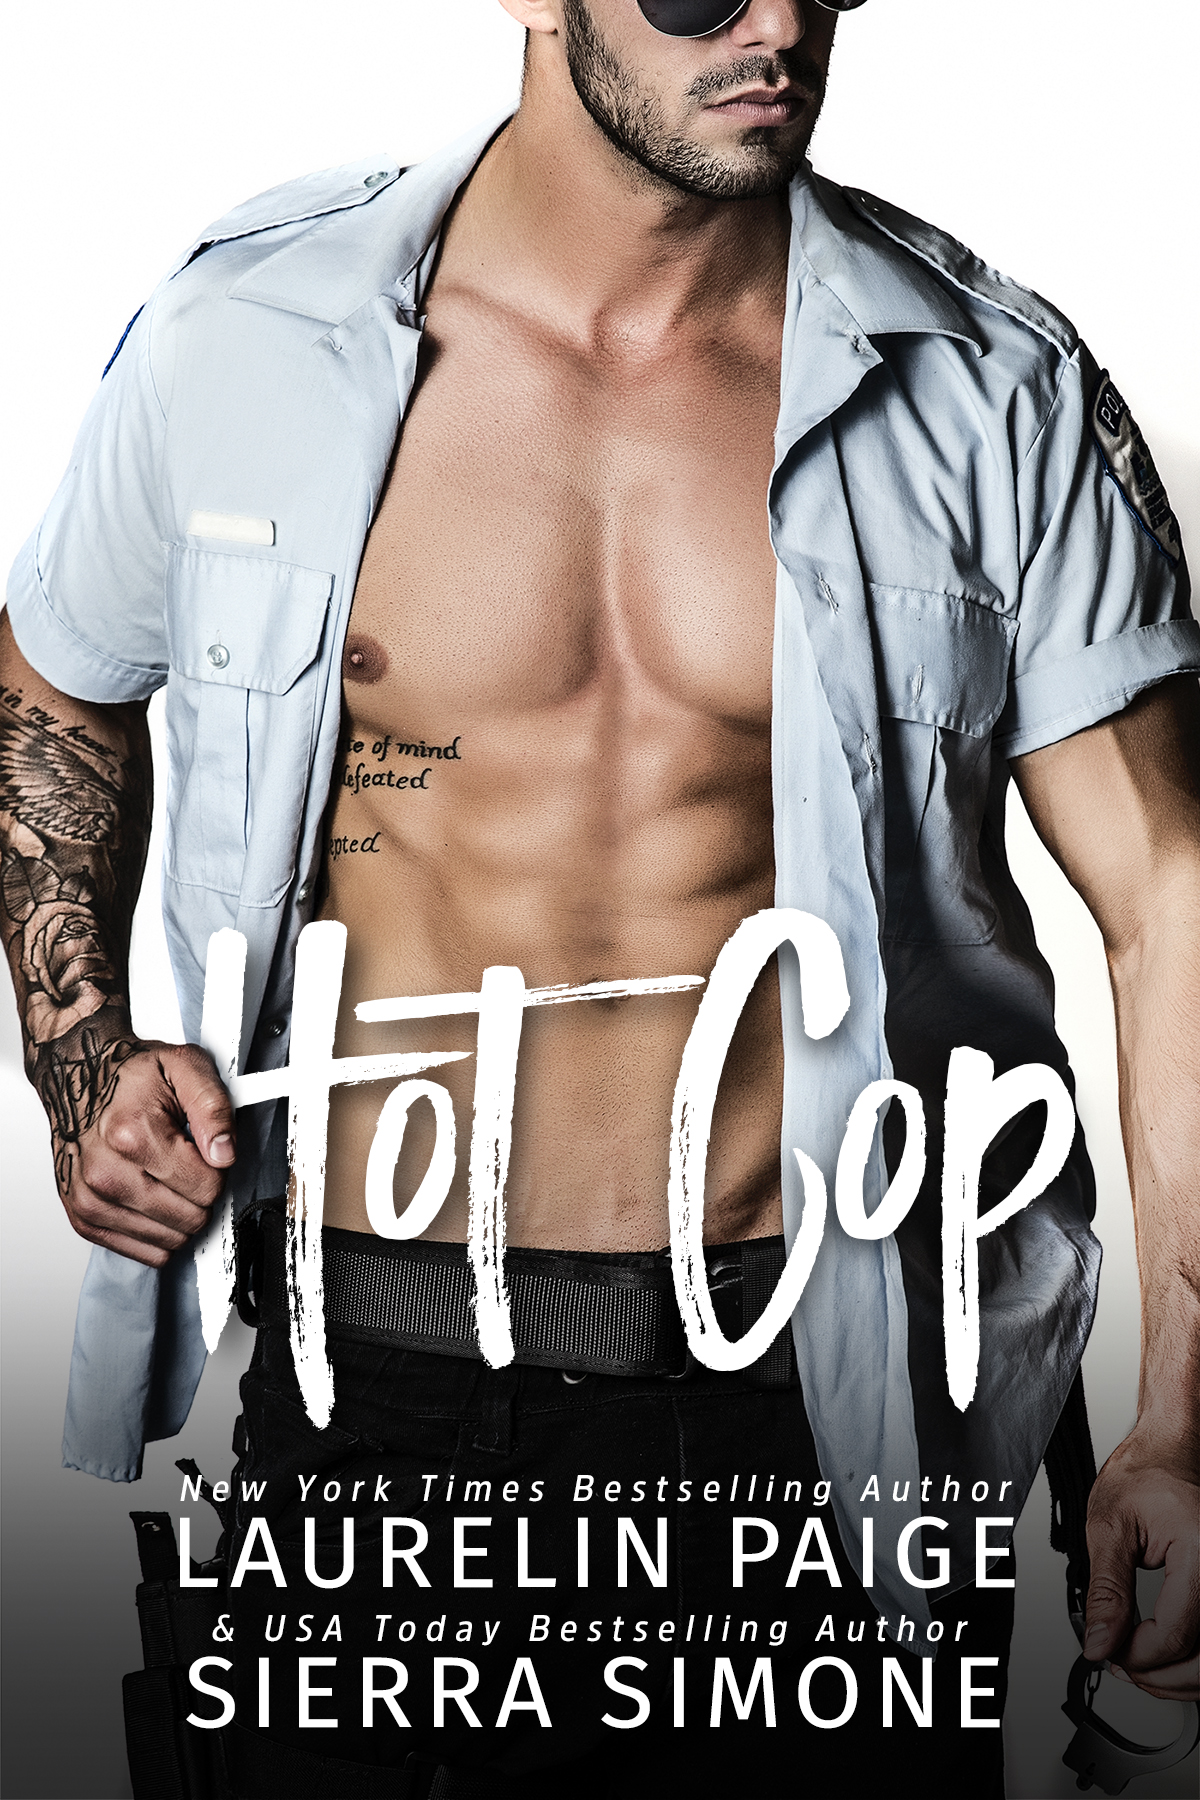 Hot Cop_amazon 5.31.21 PM.jpg